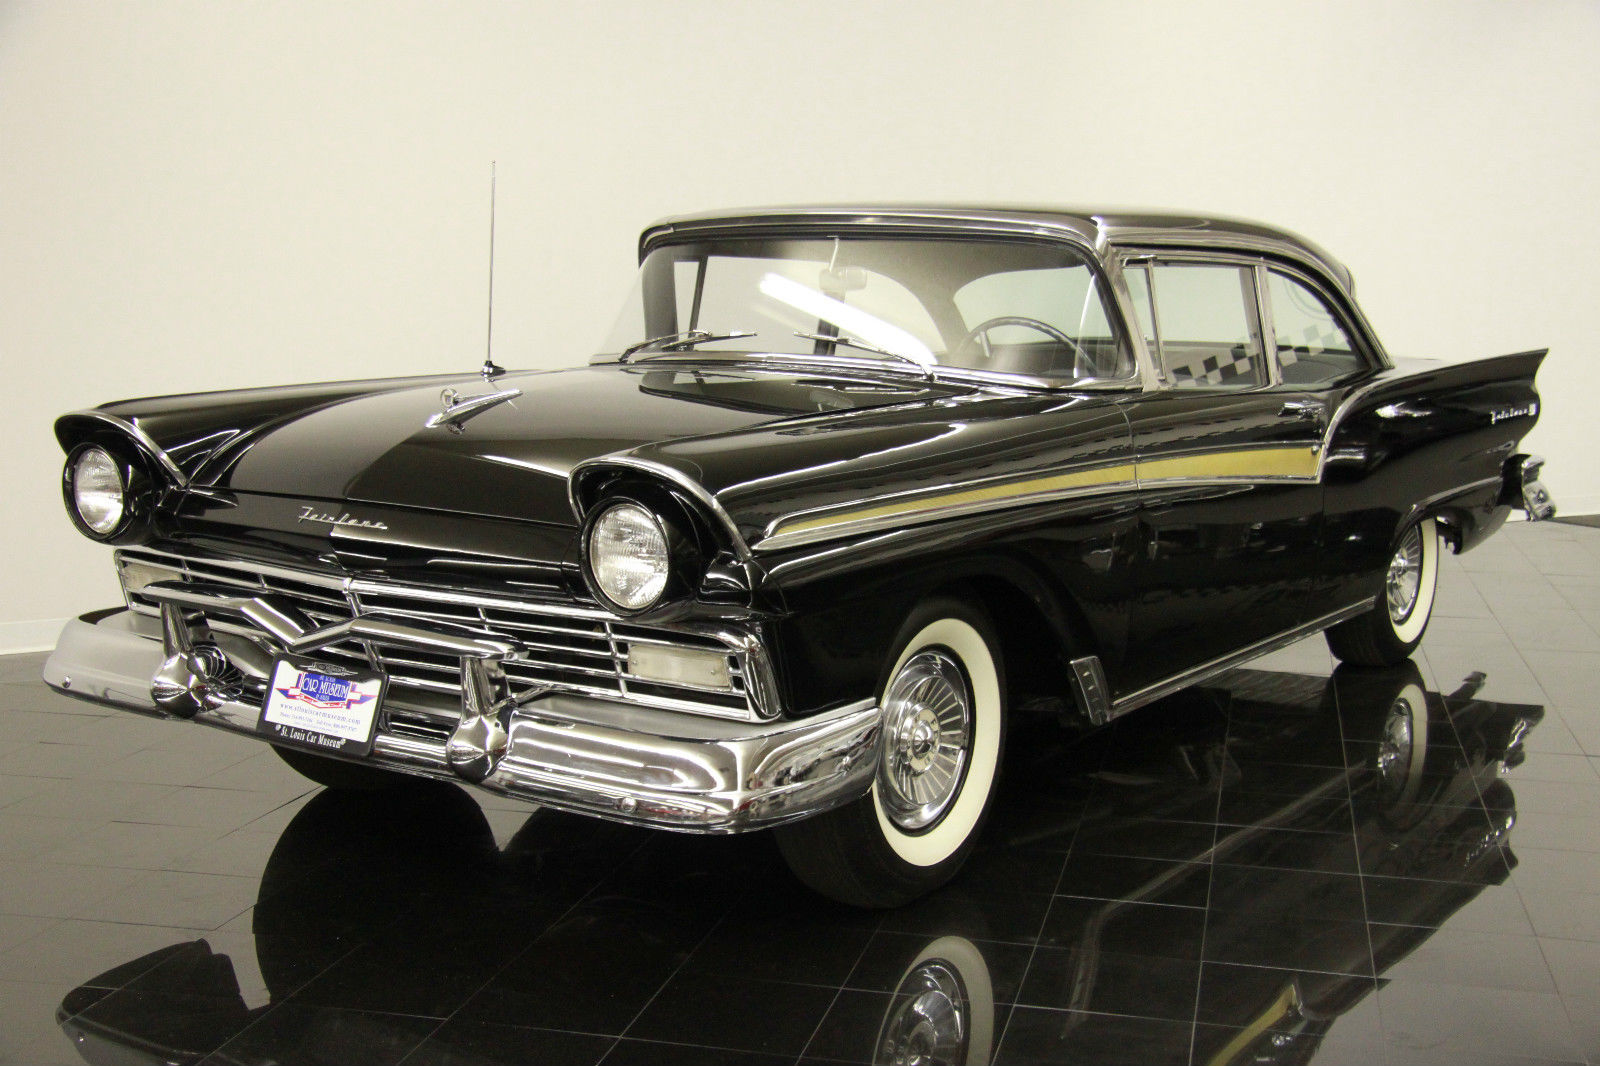 1957 ford fairlane 500 club sedan f code frame off restored 312ci v8 300hp classic ford. Black Bedroom Furniture Sets. Home Design Ideas